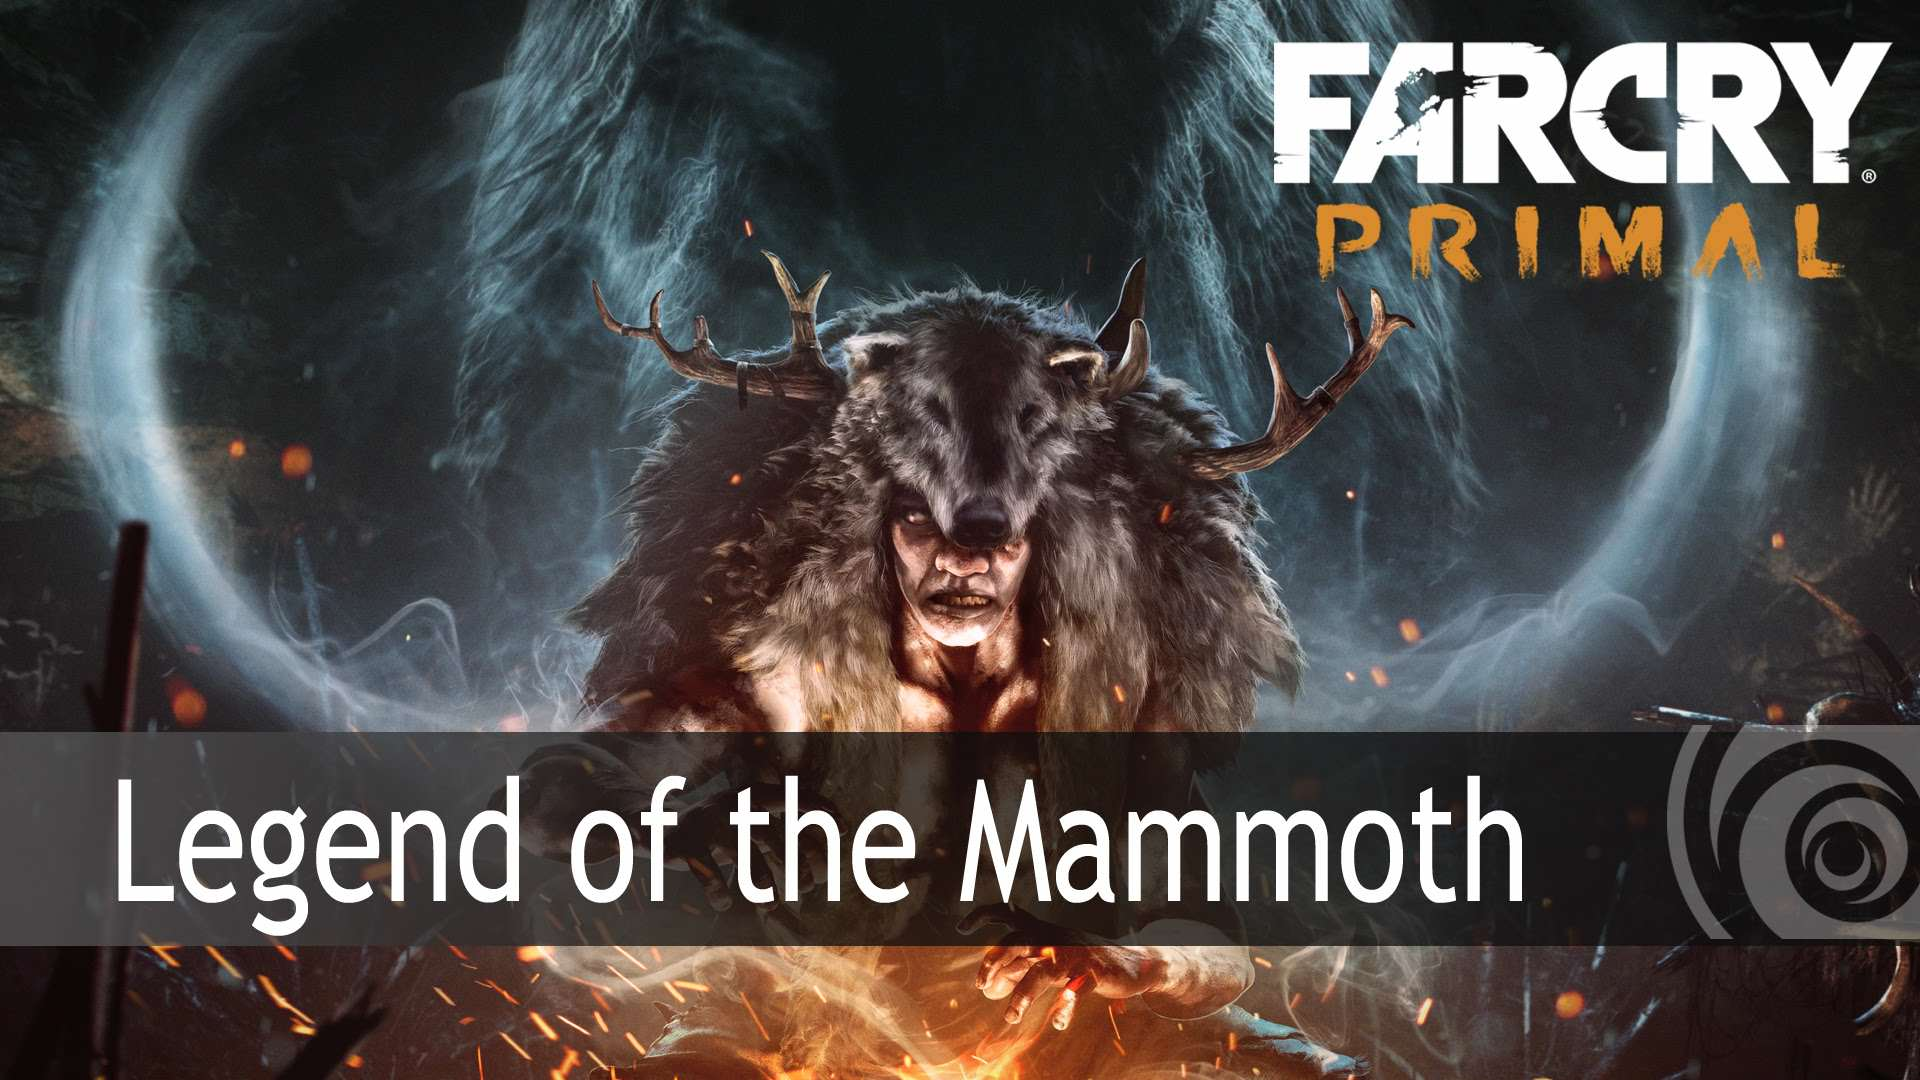 First Person Mammoth Gameplay In New Far Cry Primal Trailer maxresdefault 2 5